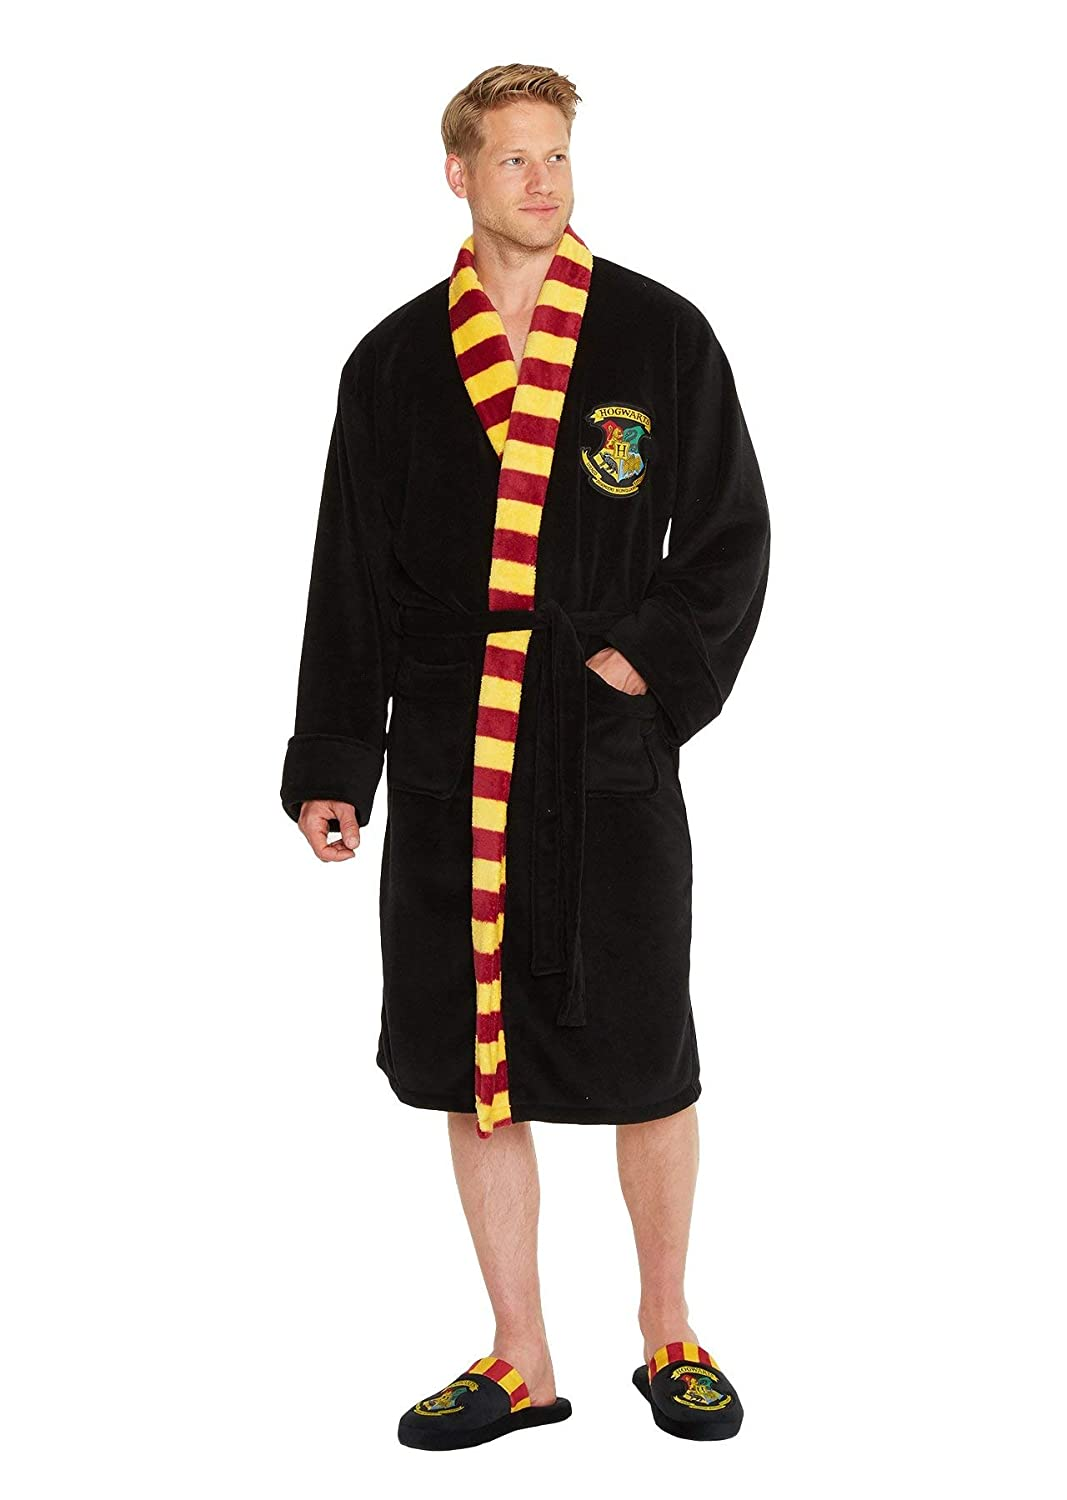 HARRY POTTER Hogwarts Bathrobe Multicolour Multi Colour One Size Abysse Corp Abysse Corp_TEXGRO003